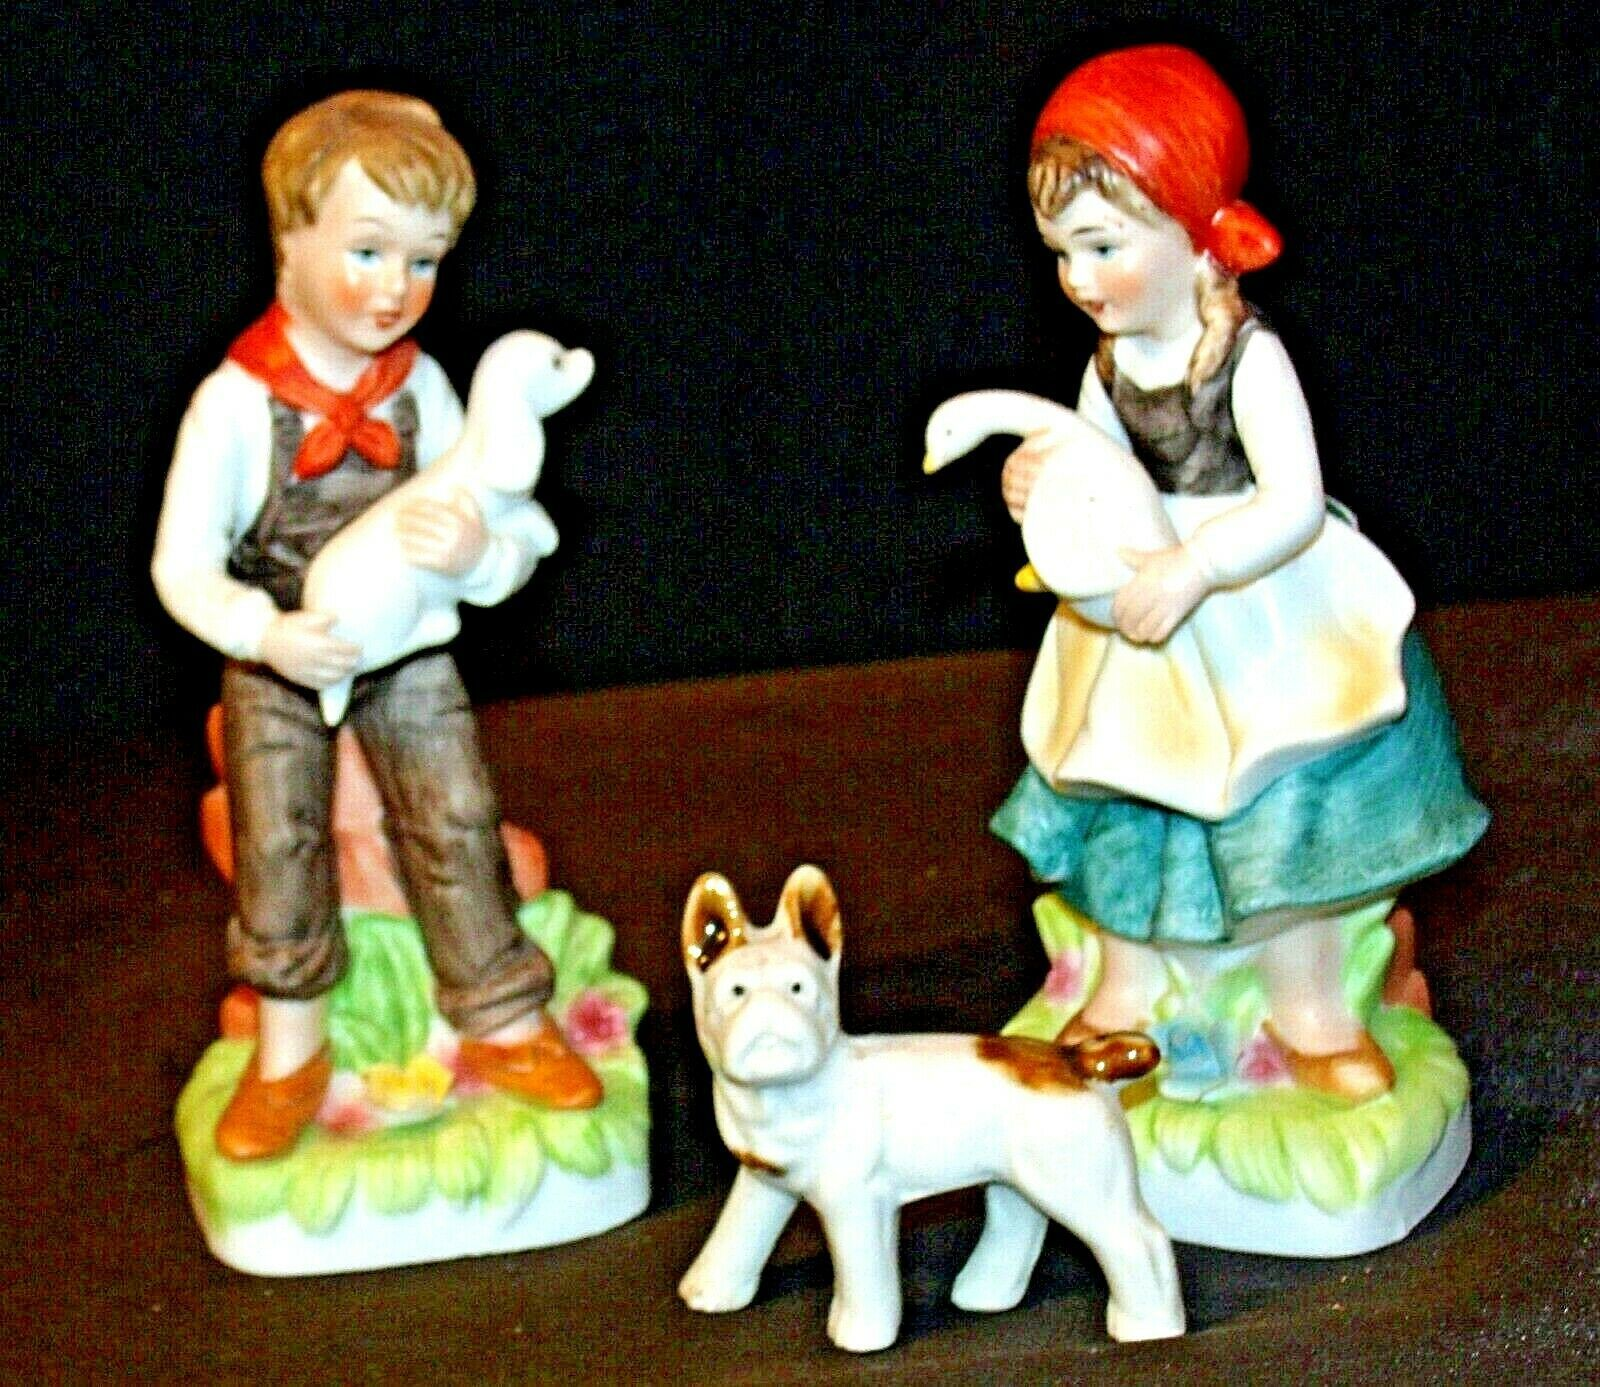 Boy and Girl with Dog Figurines AA-191973 Vintage